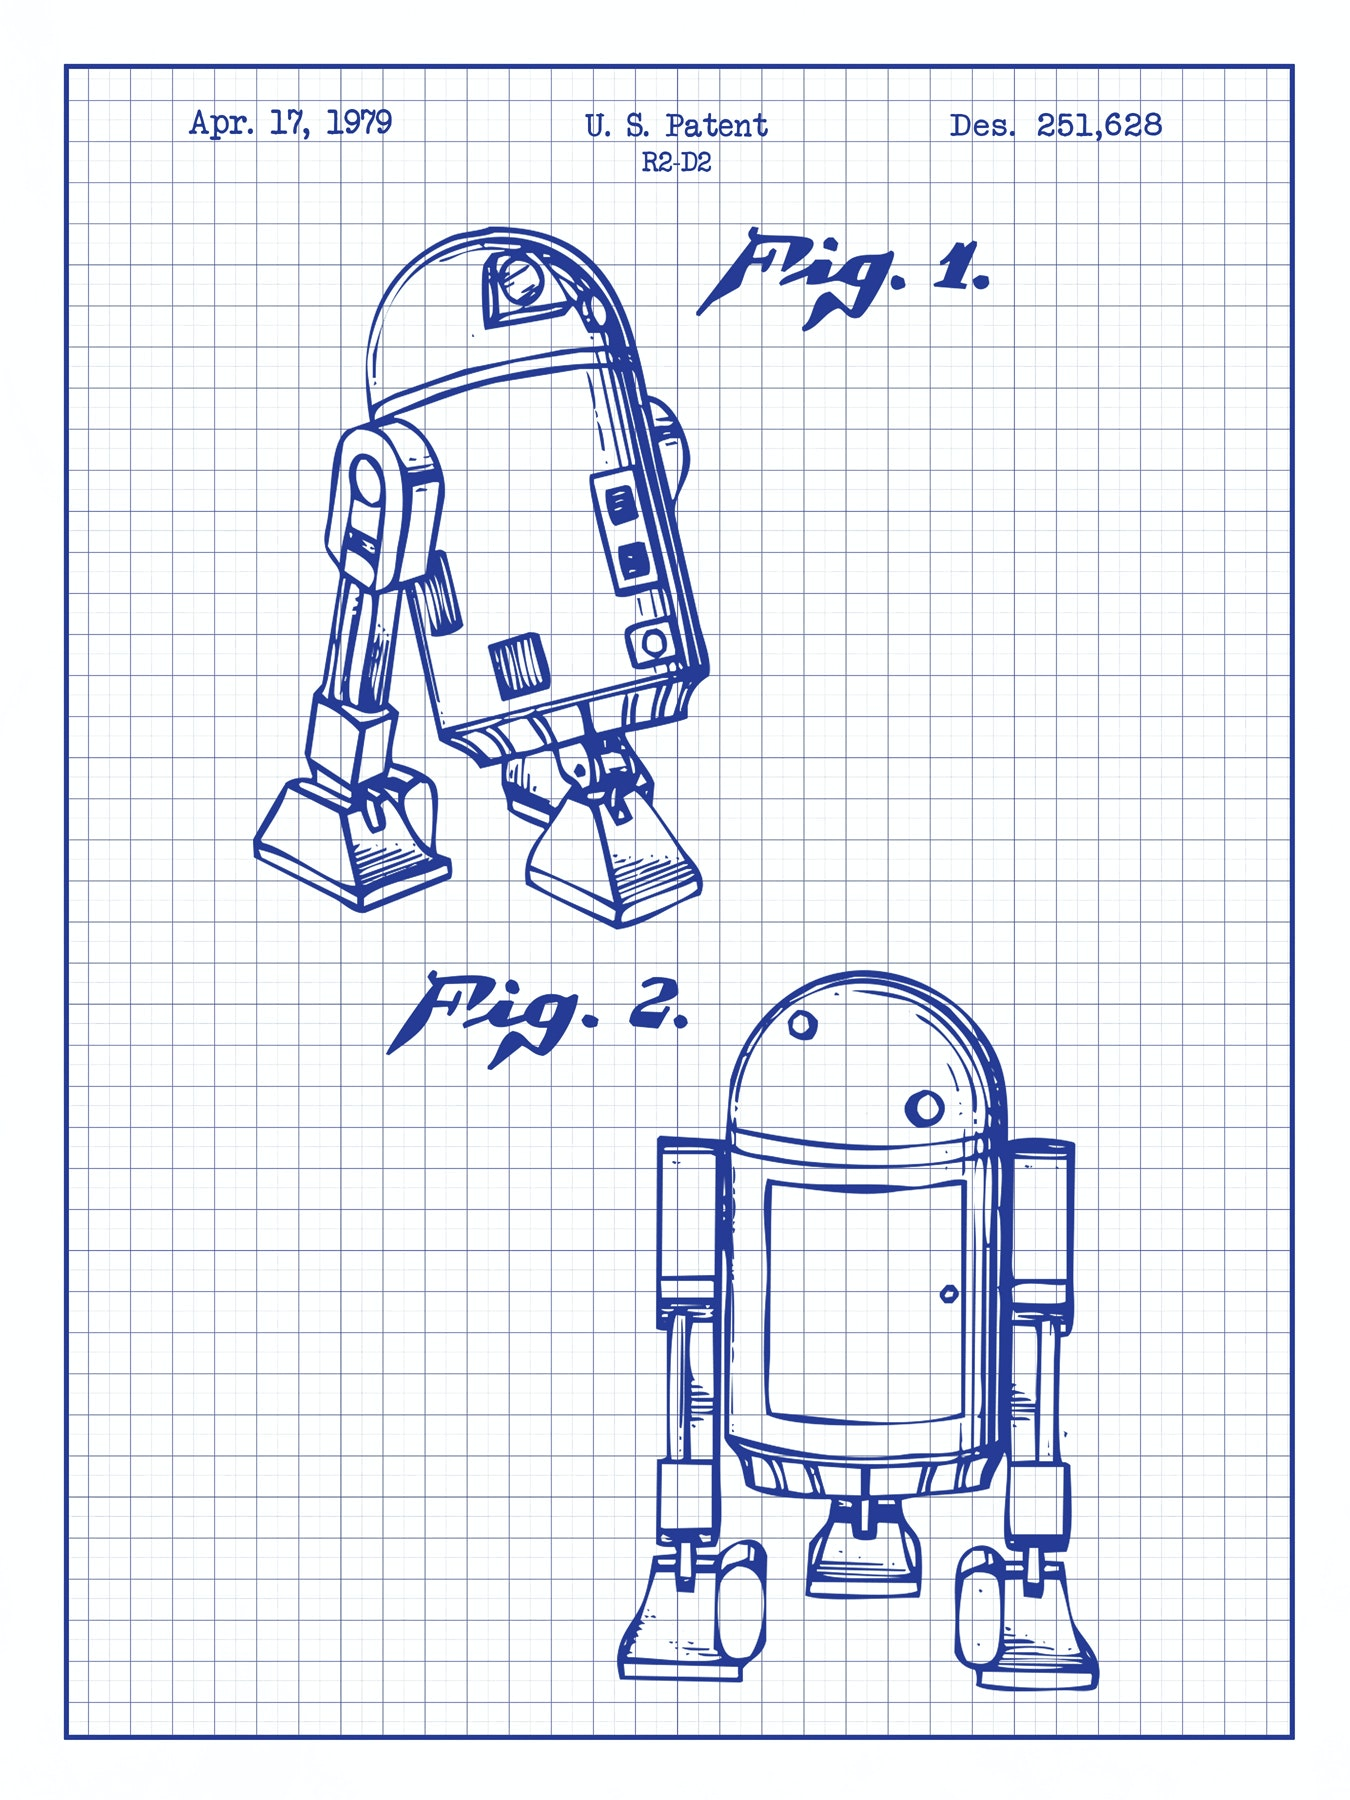 SP-SYFI-R2-D2-251,628-White-Grid-Blue-Ink-24-Inches